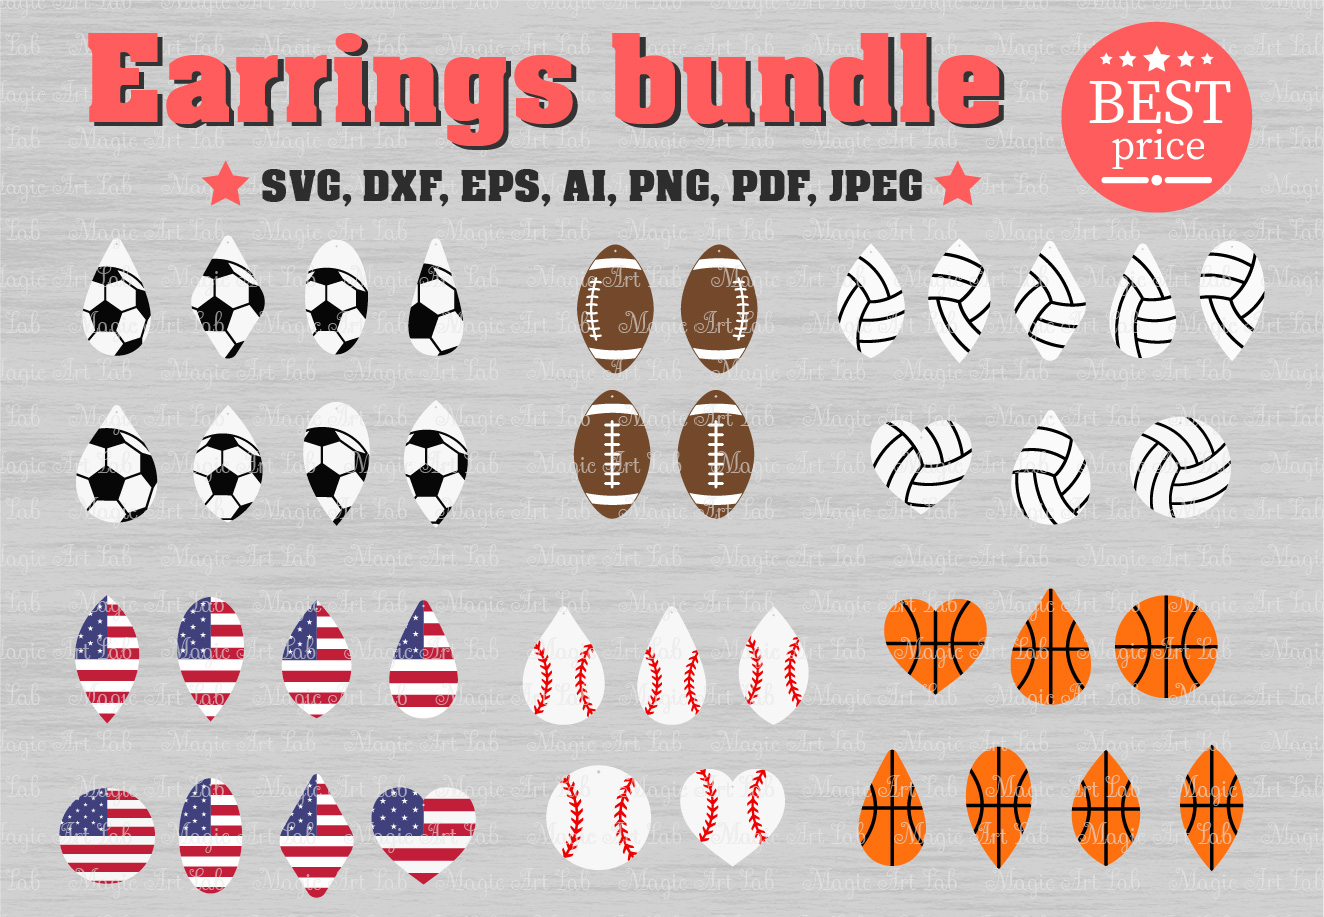 Download Free Earrings Bundle Graphic By Magicartlab Creative Fabrica for Cricut Explore, Silhouette and other cutting machines.